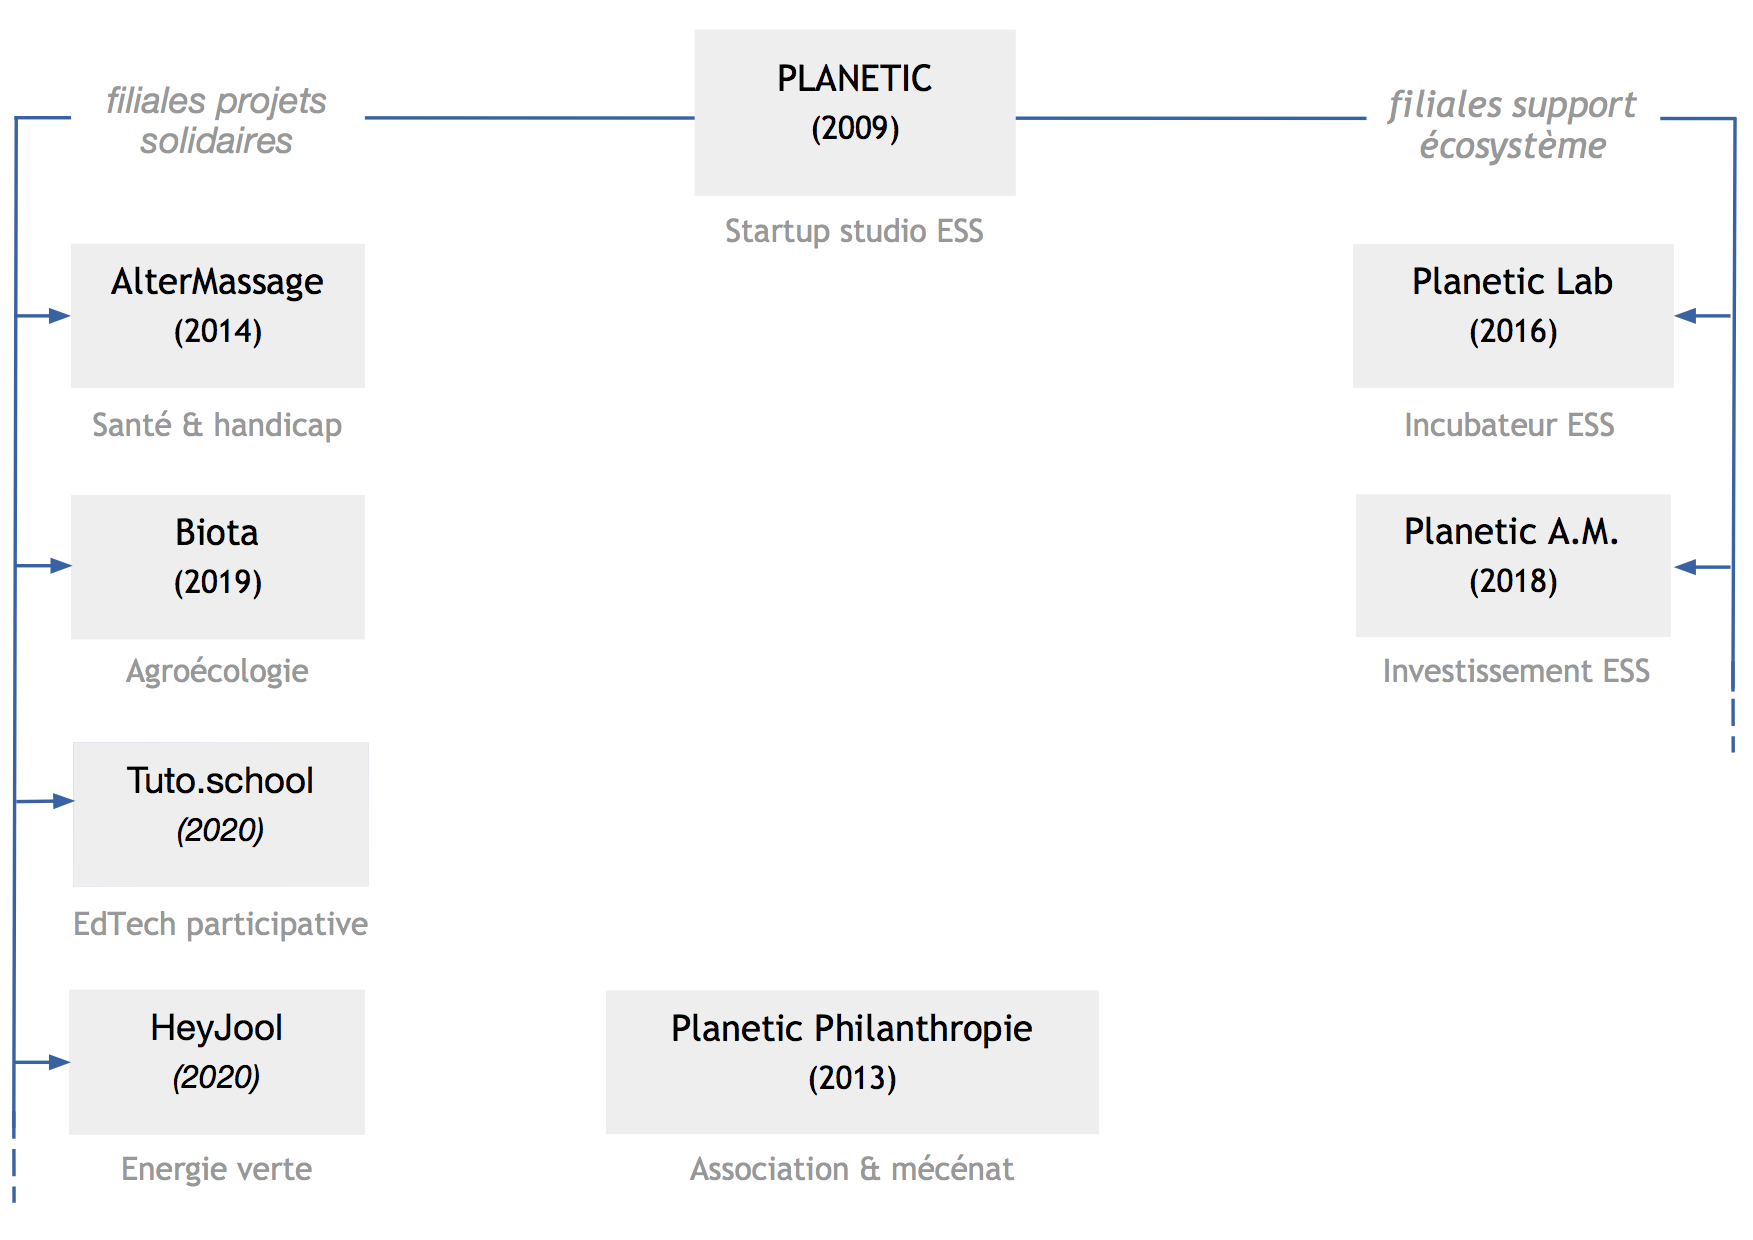 Organigramme Planetic Groupe